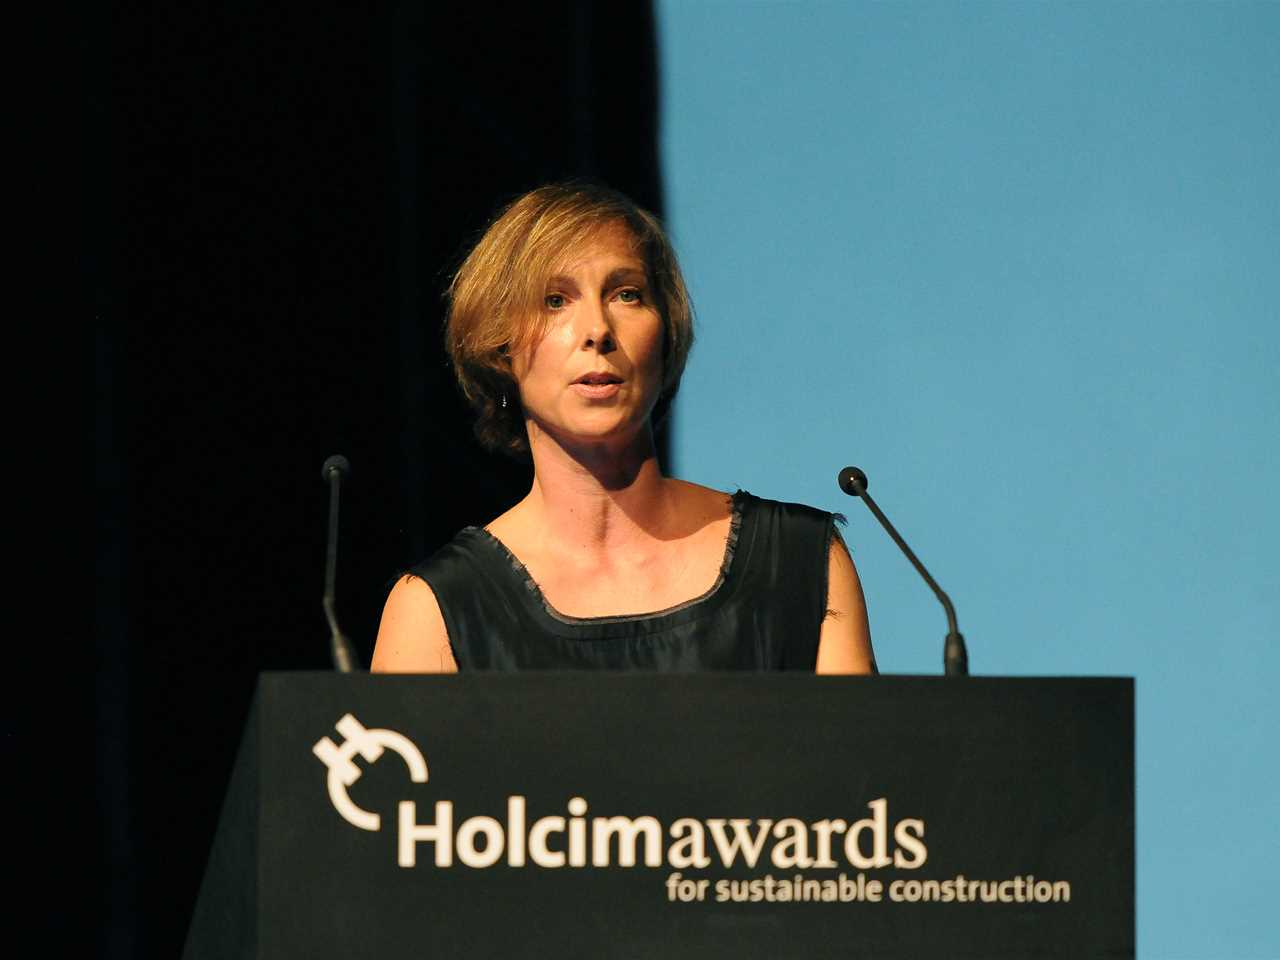 Lucy Musgrave, Co-director of Publica, UK and member of the Holcim Awards 2011 Europe jury – …